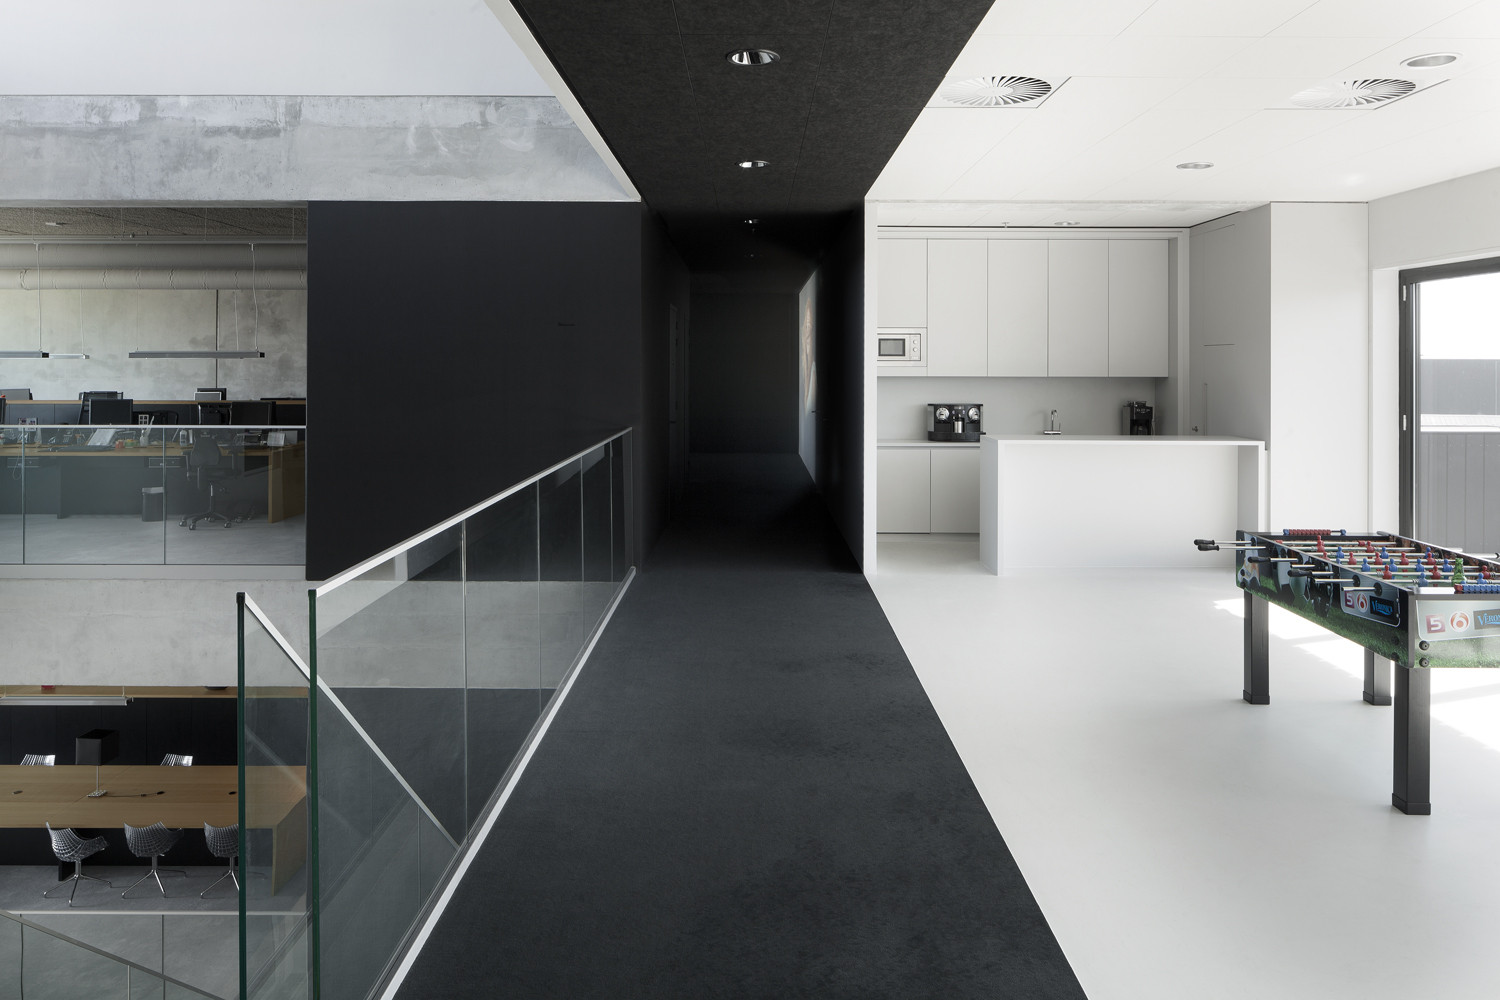 Gallery of office 05 i29 interior architects vmx architects 8